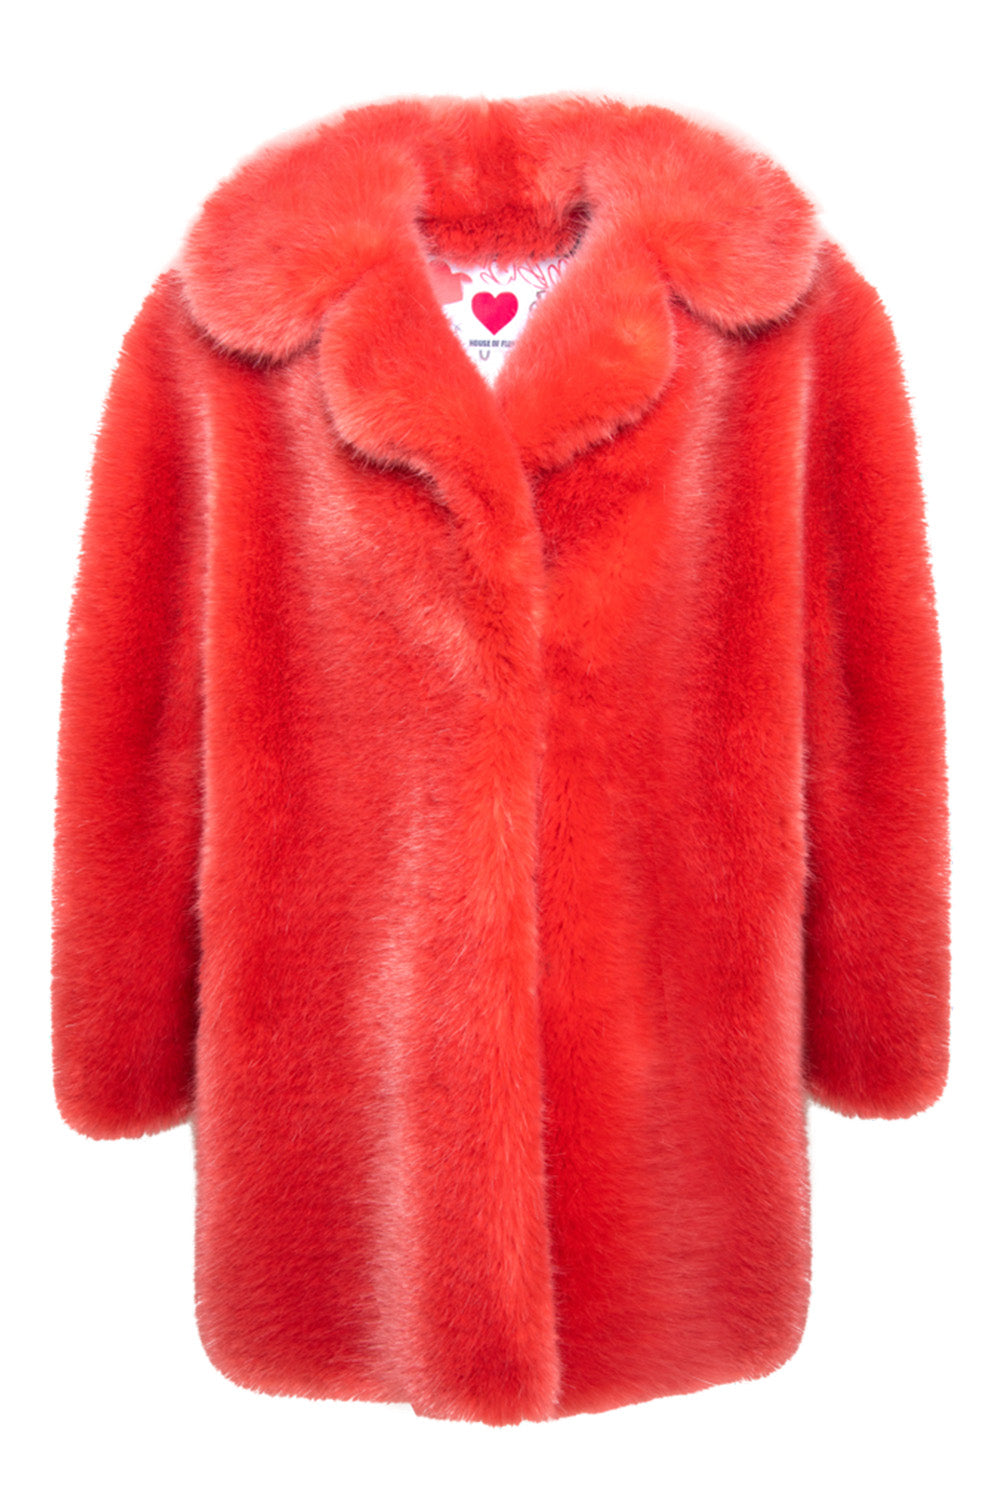 Fox Oversized Peacoat in Salmon Orange